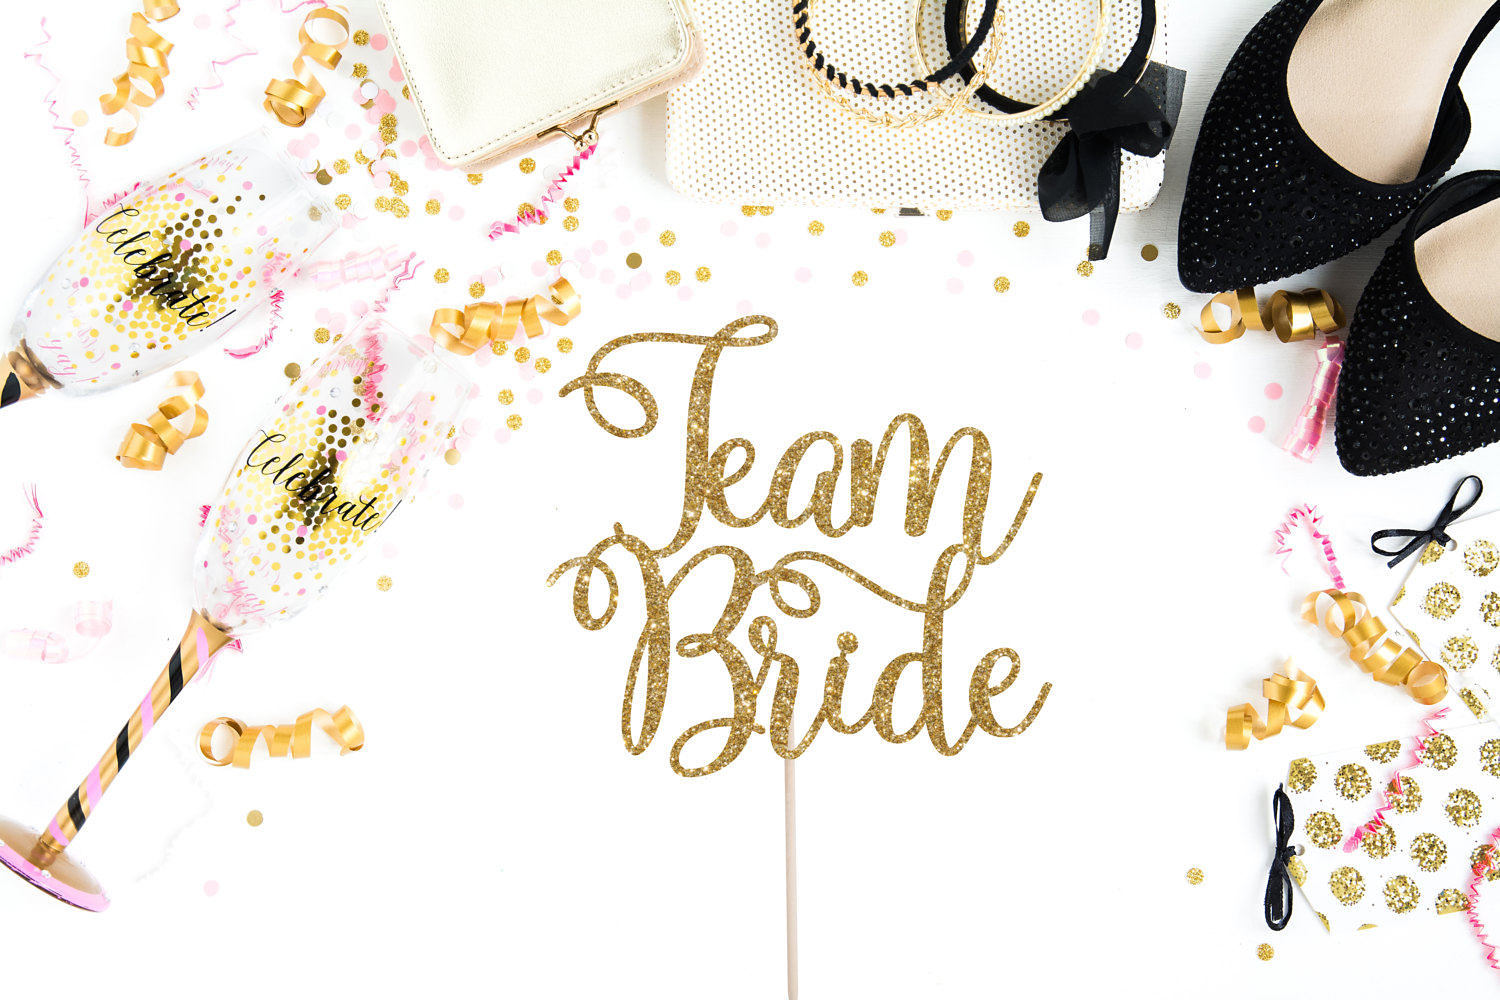 Unique Invitations and Quirky Gifts for Bridal Shower